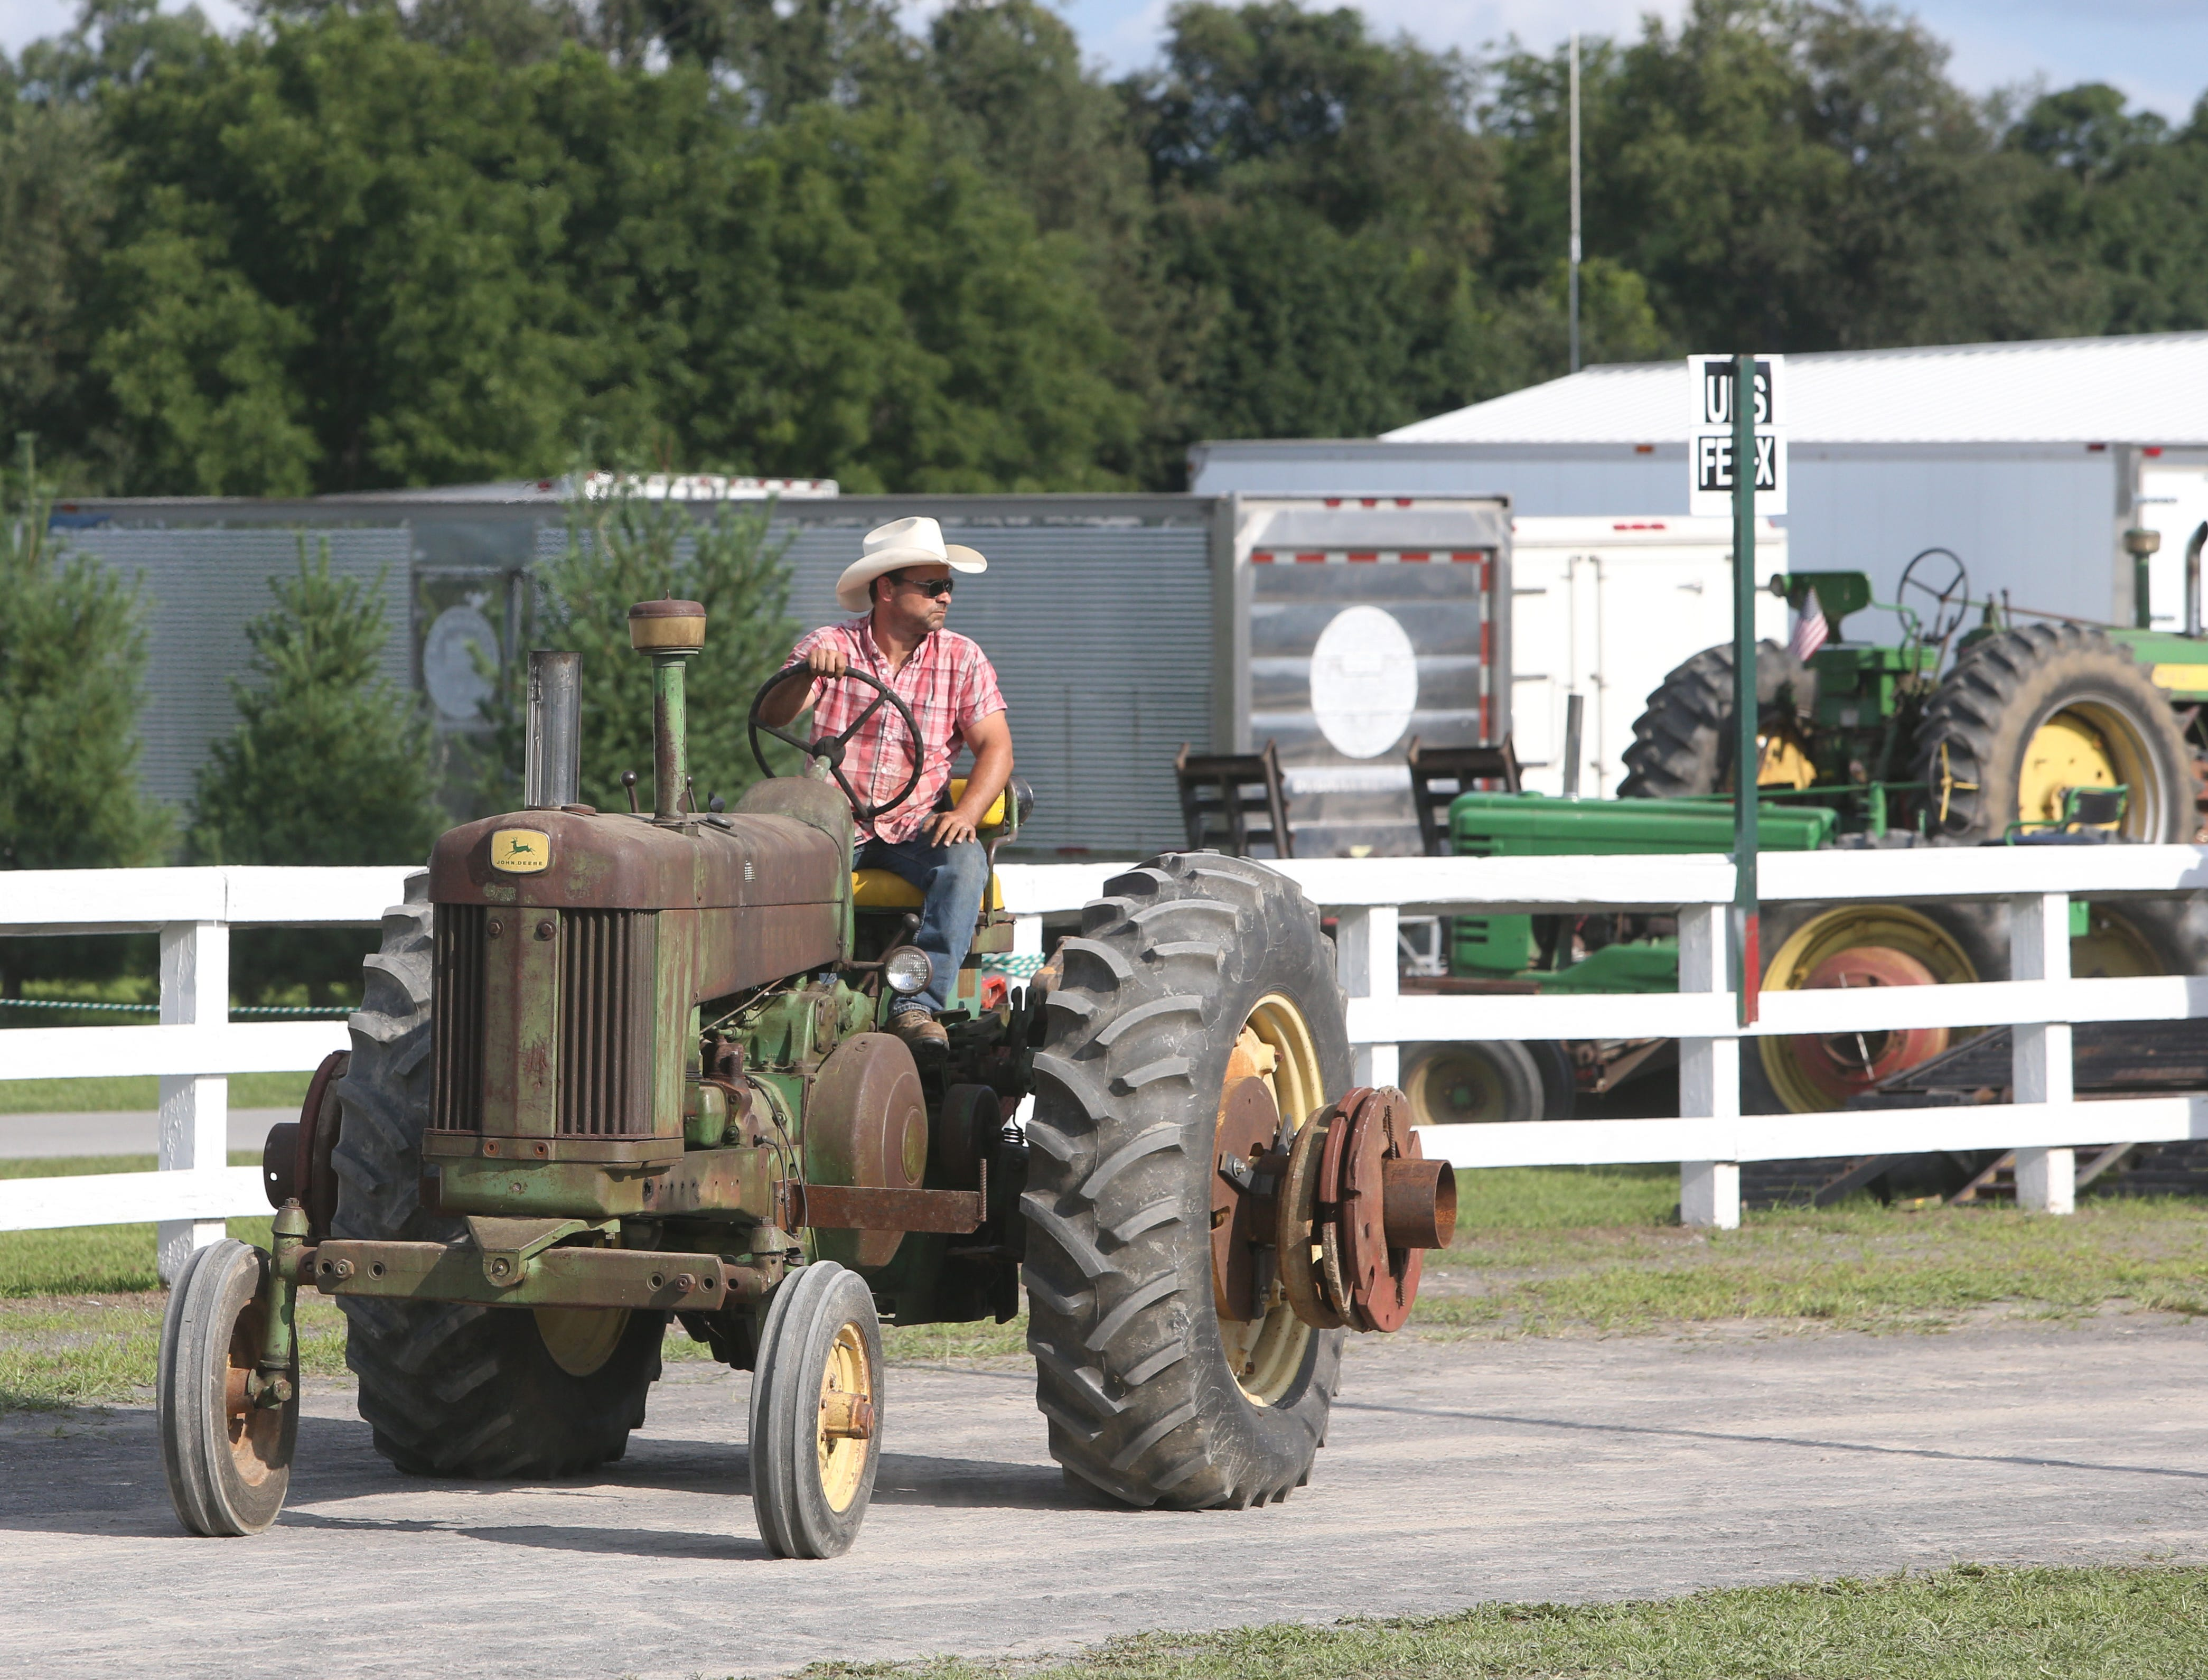 Kyle Mooney of Millbrook drives a vintage John Deere tractor at the Dutchess County Fair on August 21, 2018.